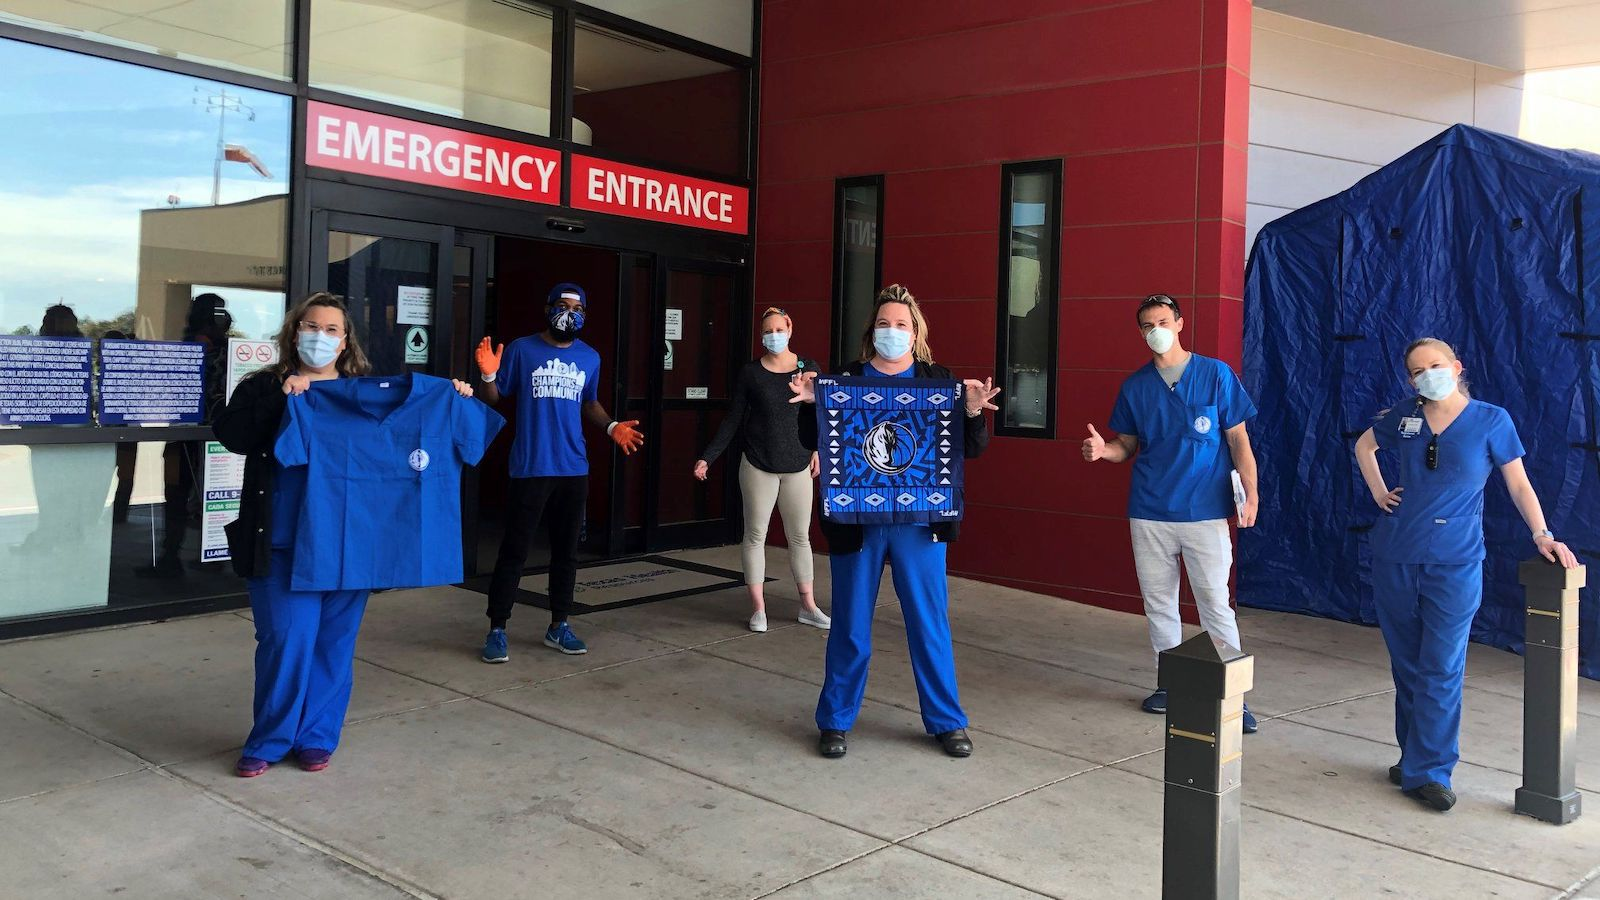 Recognizing the shortage of masks and other pandemic supplies, the Dallas Mavs merchandising team procured personal protective equipment for first responders and health care workers.